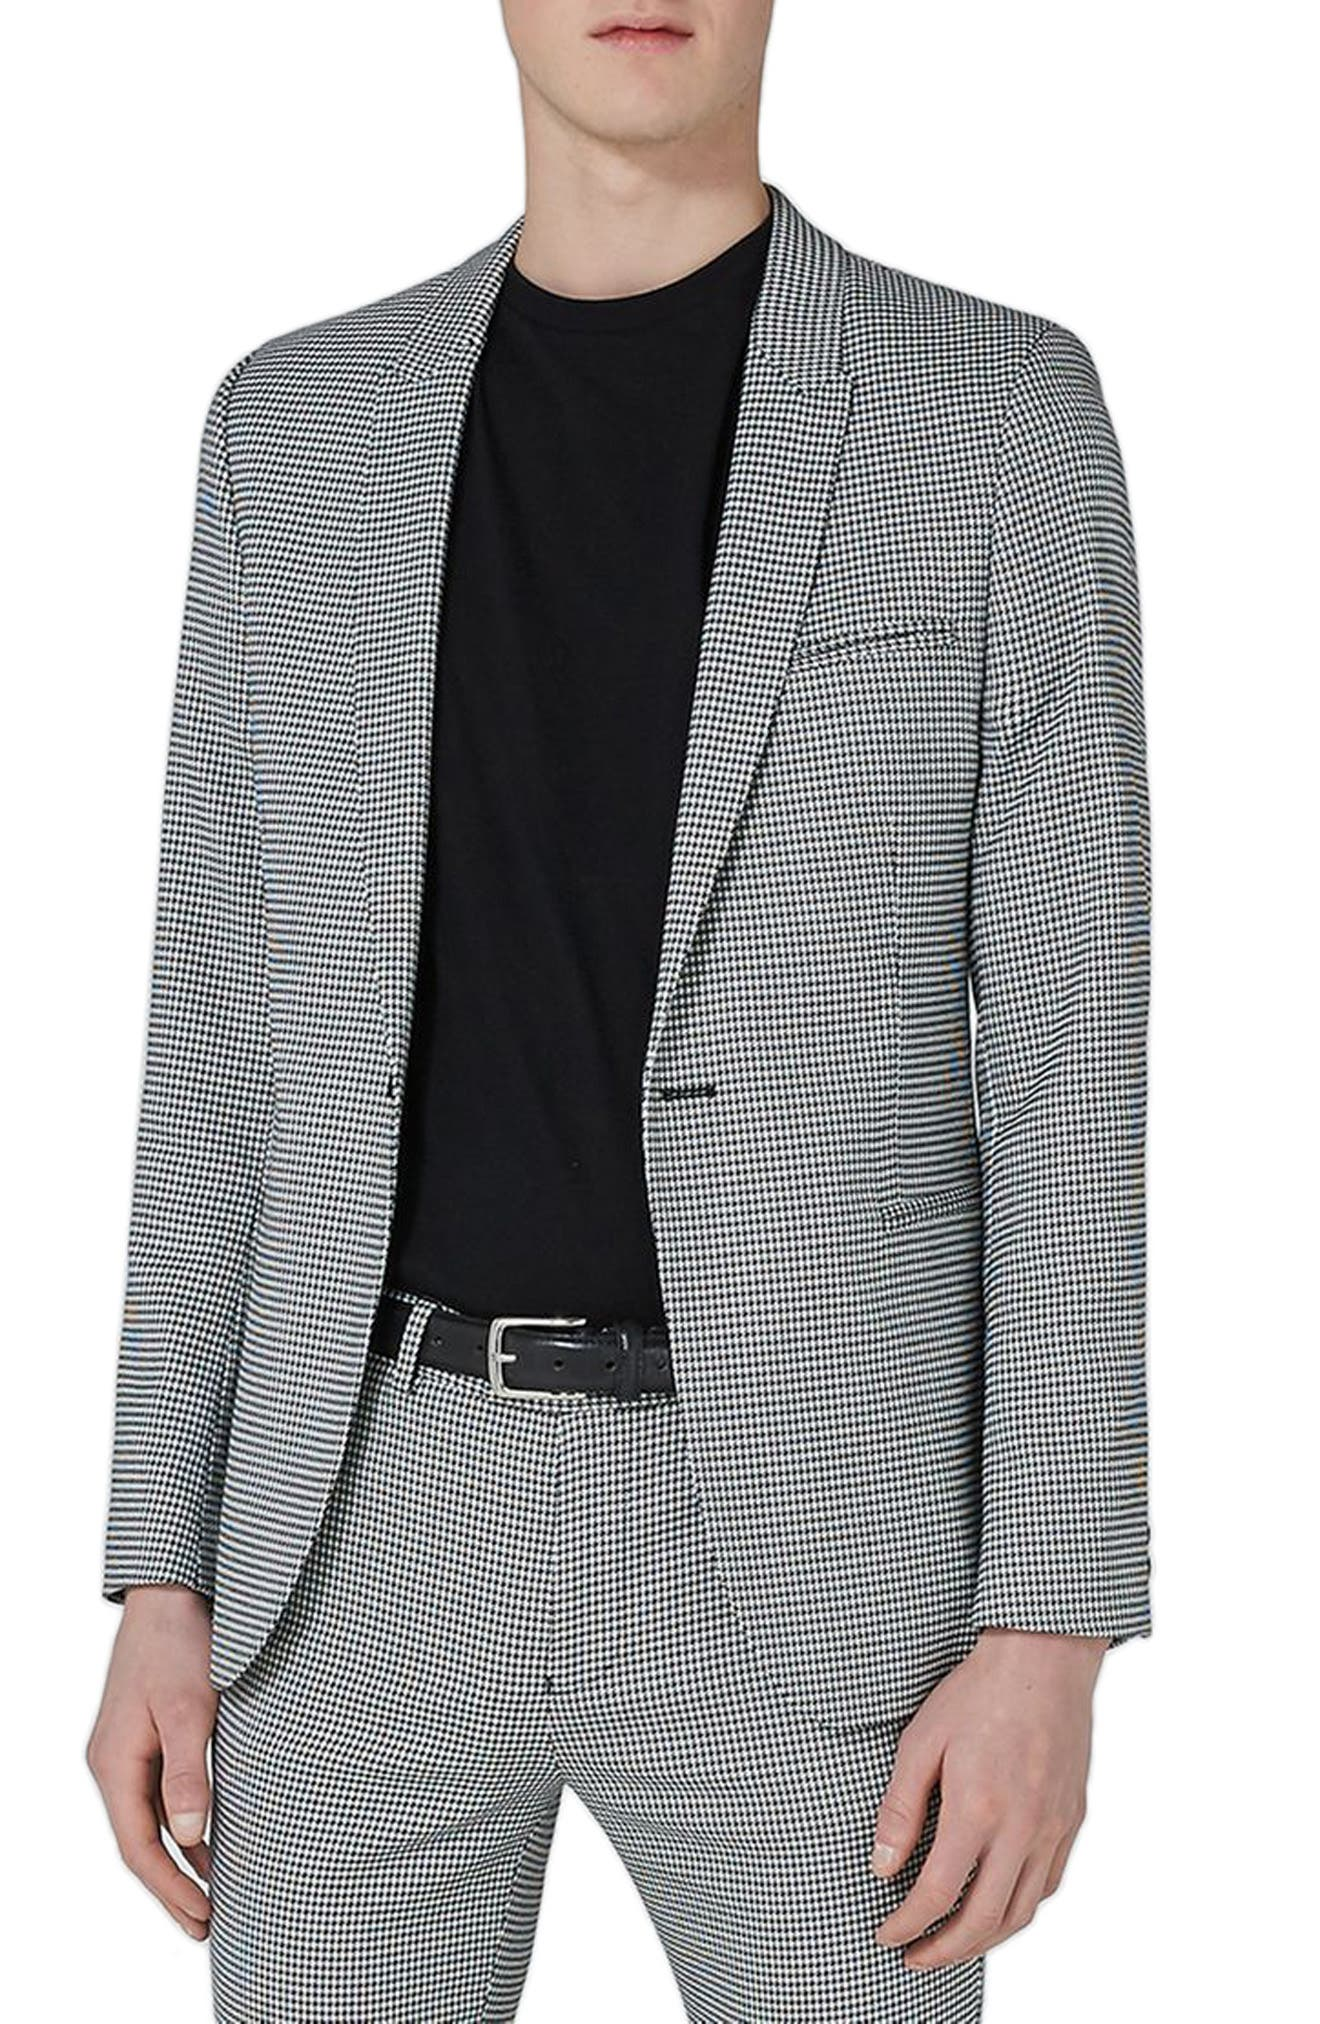 Ultra Skinny Fit Houndstooth Suit Jacket,                             Main thumbnail 1, color,                             020